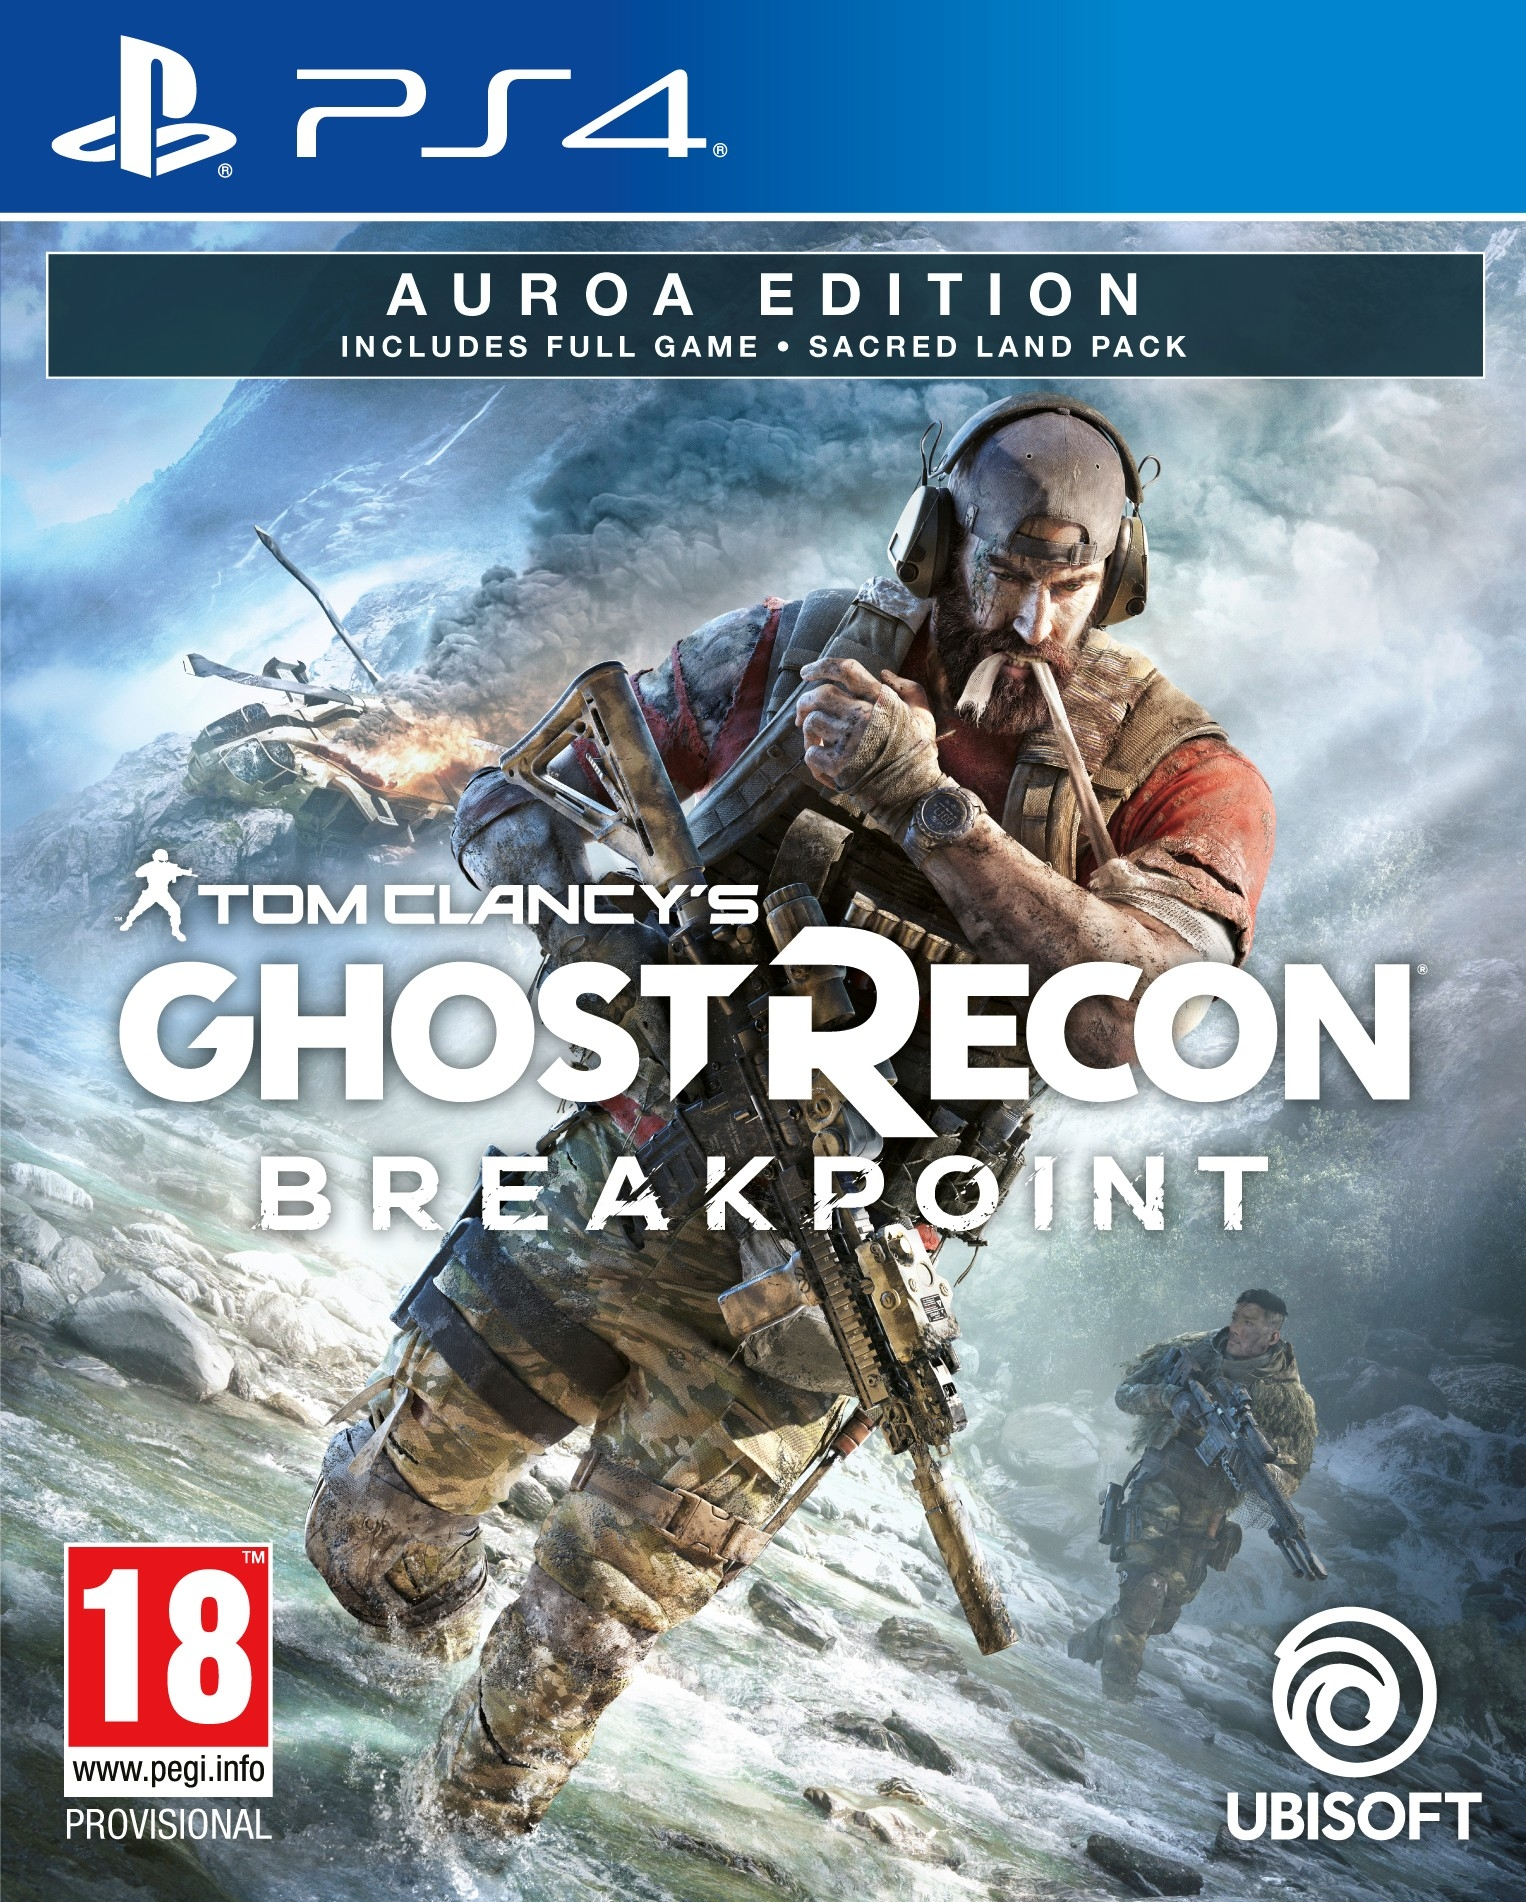 PS4 Ghost Recon Breakpoint Auroa Edition